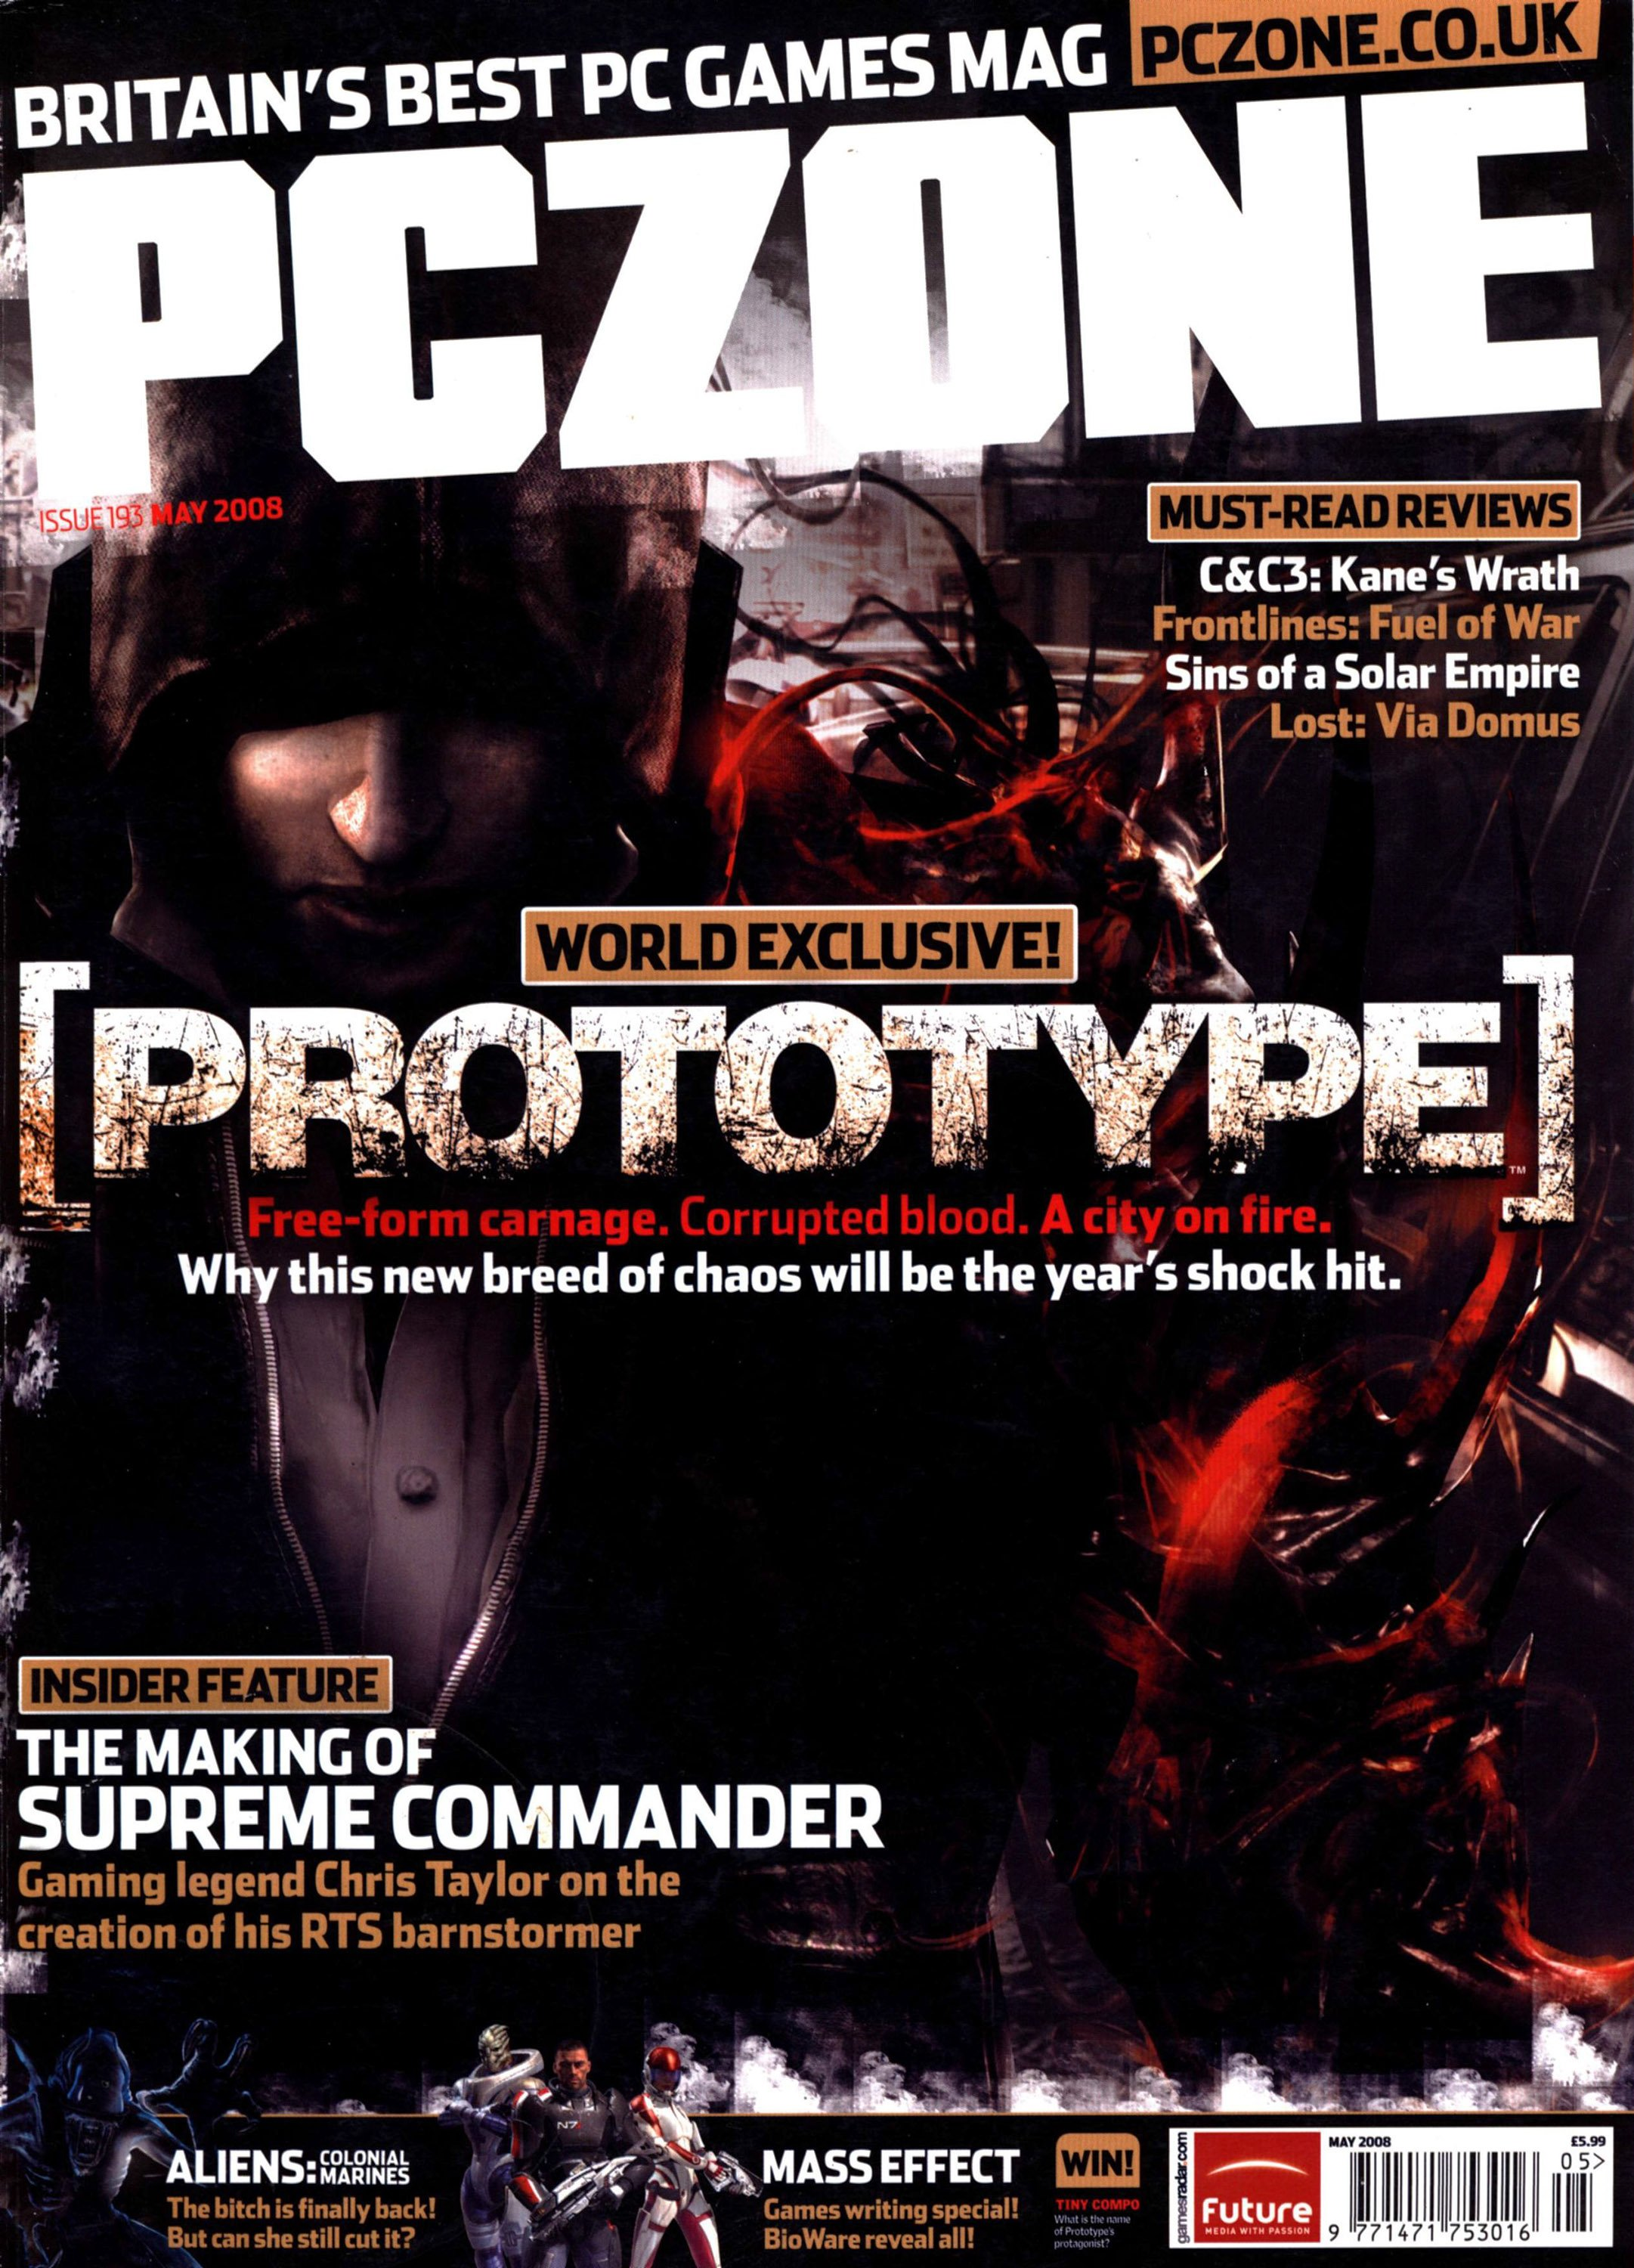 PC Zone Issue 193 (May 2008)